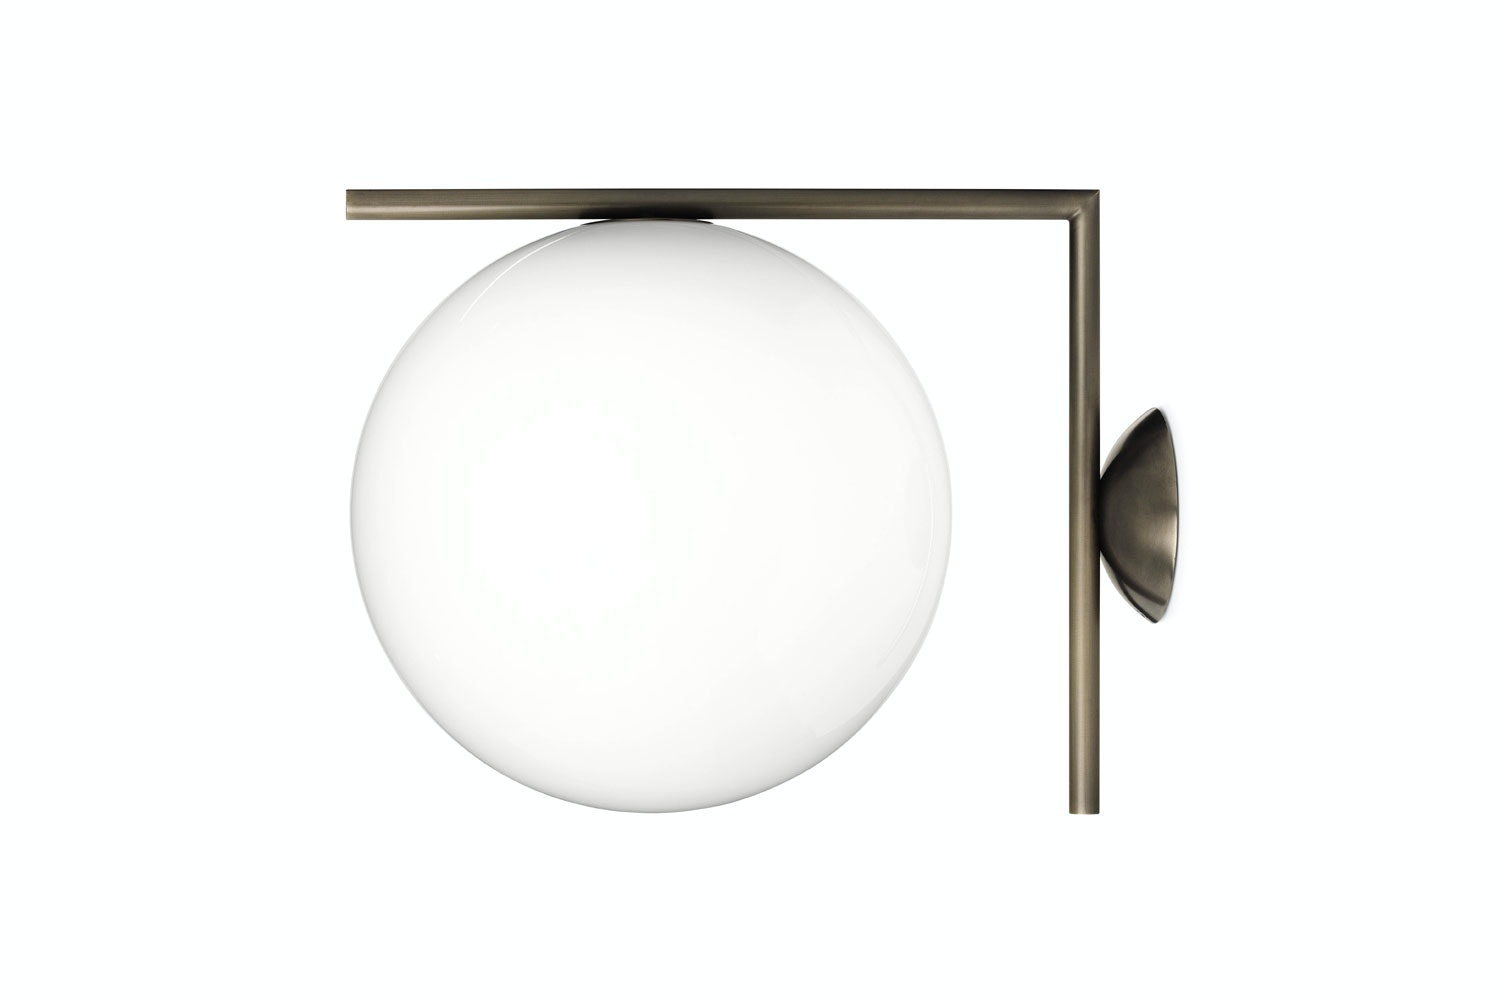 IC WALL LIGHT by Michael Anastassiades for Flos